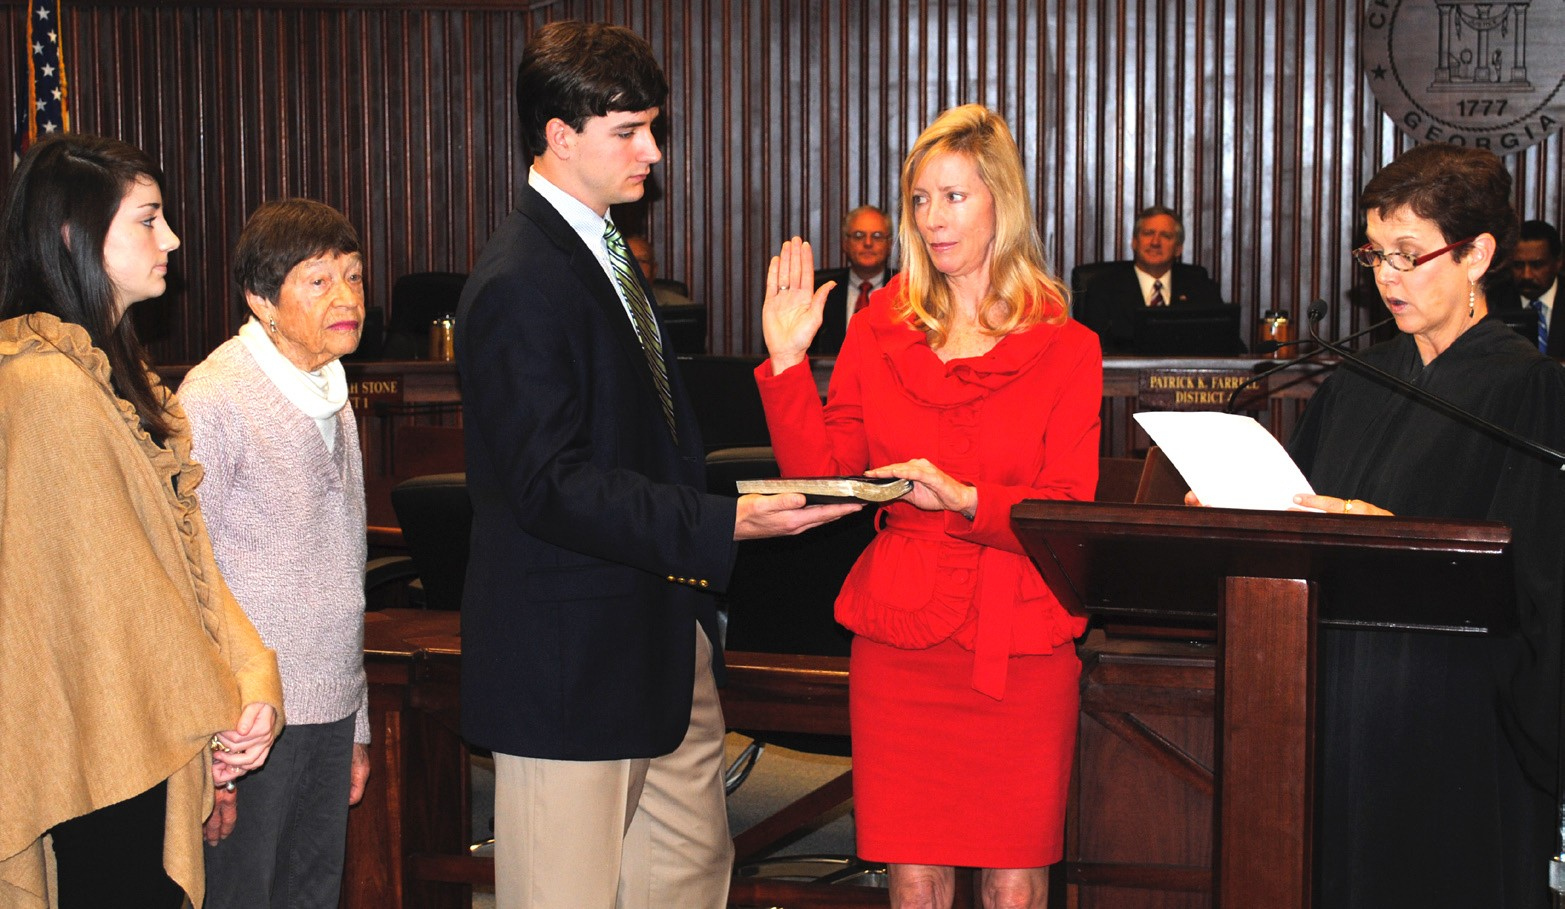 Commissioner Helen Lynah Stone, District 1, sworn in by The Honorable Judge Louisa Abbot.